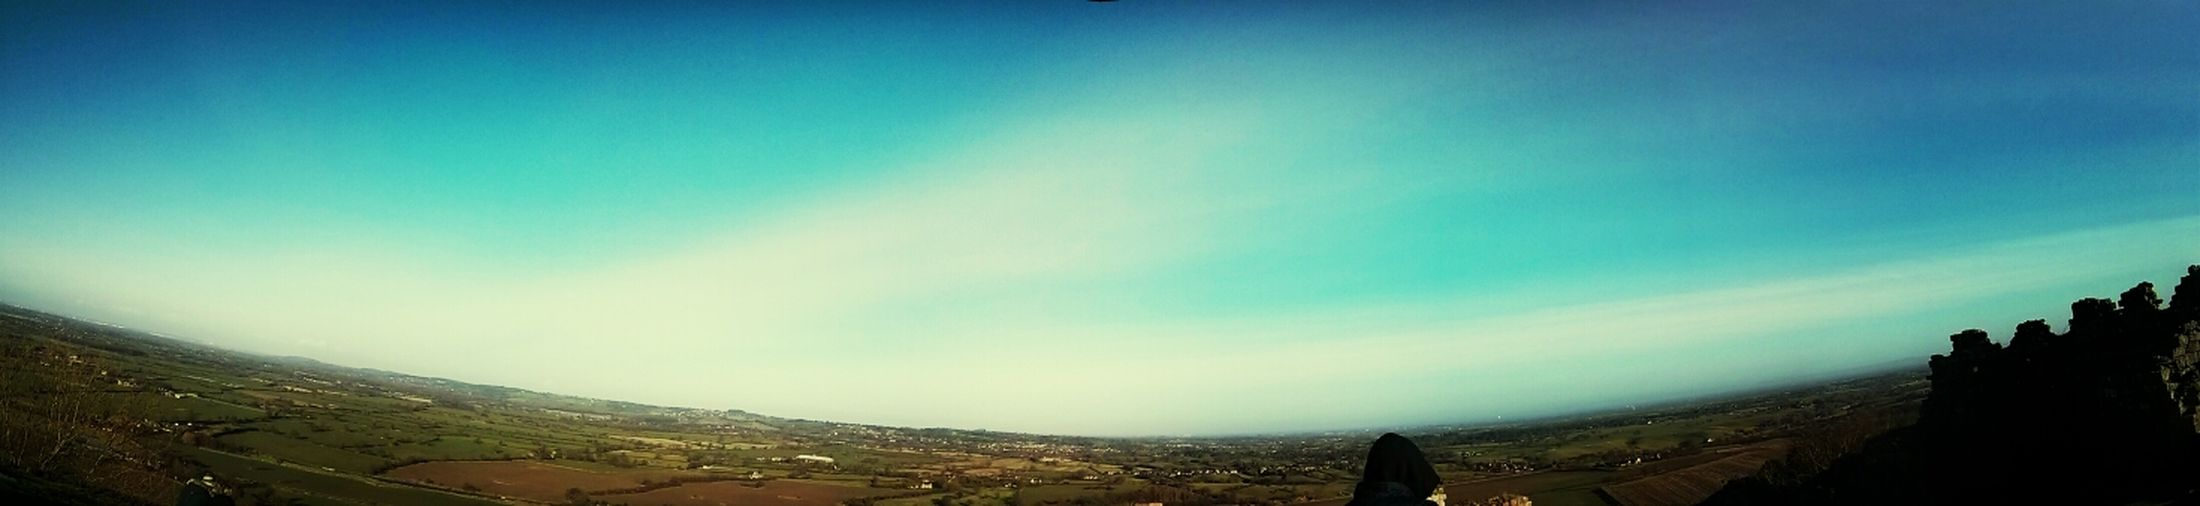 Cheshire plains from the top of Beeston Castle done as 3 shot panorama